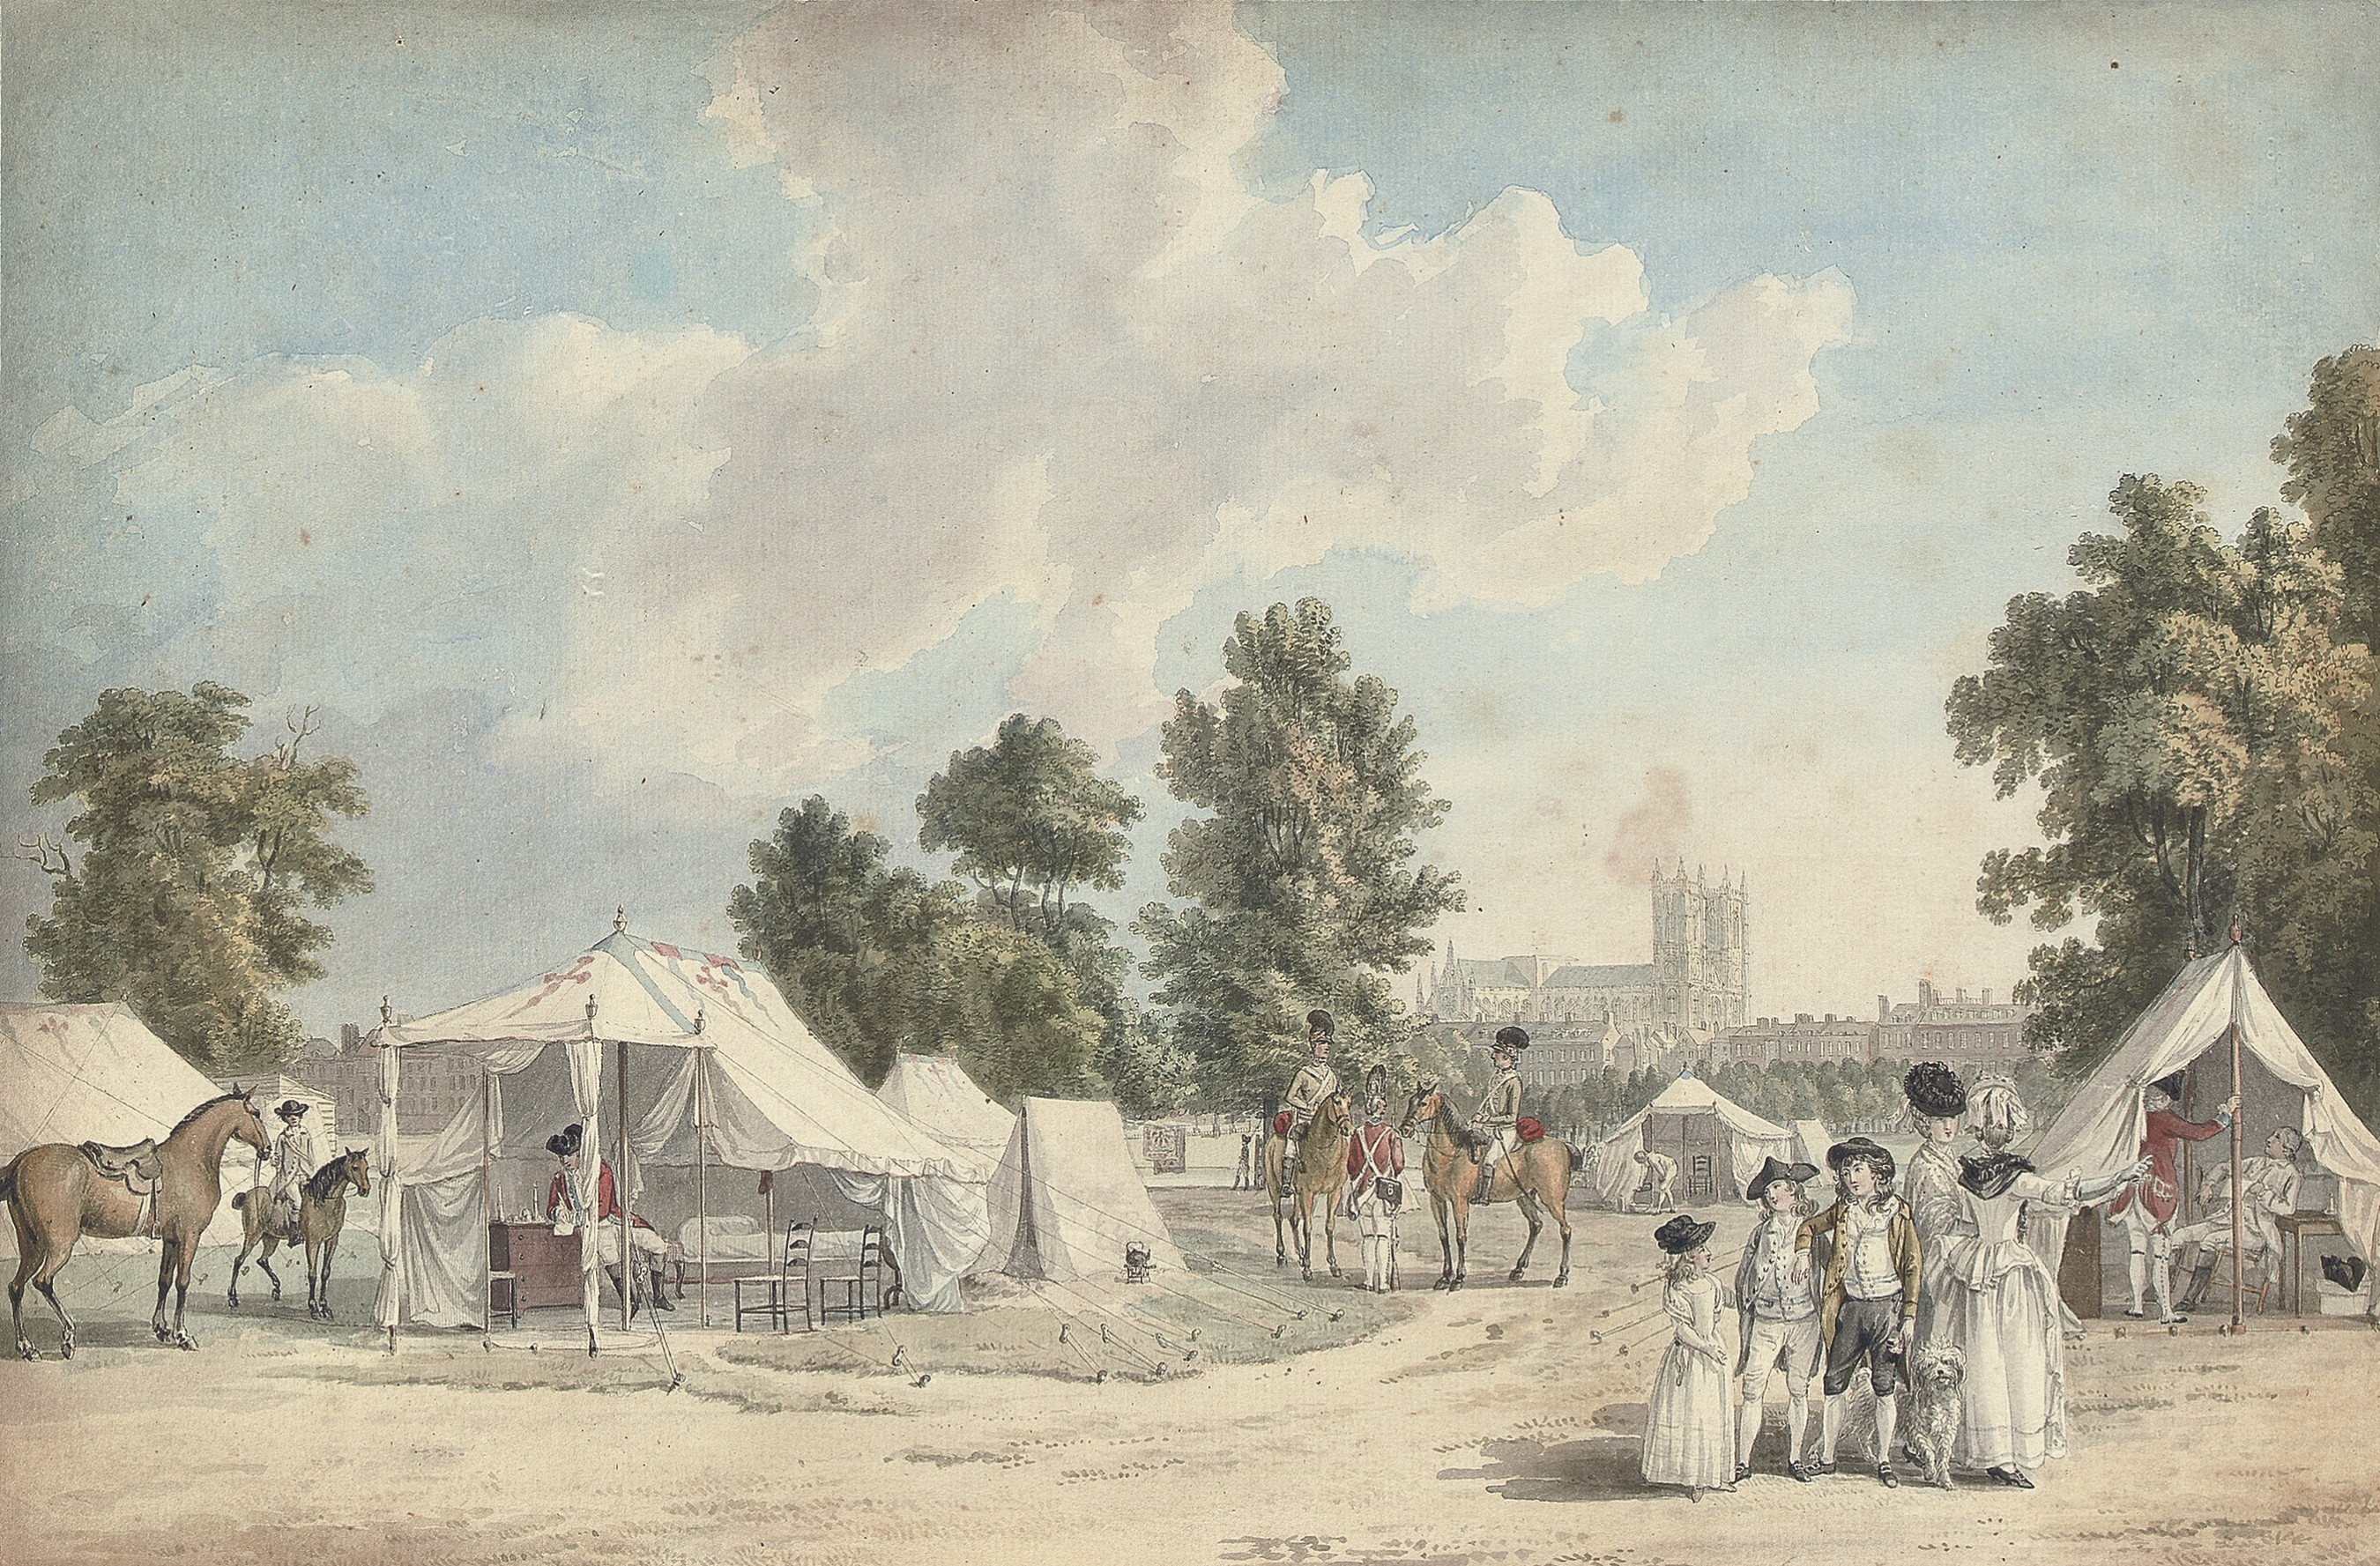 The Encampment, St James's Park, London